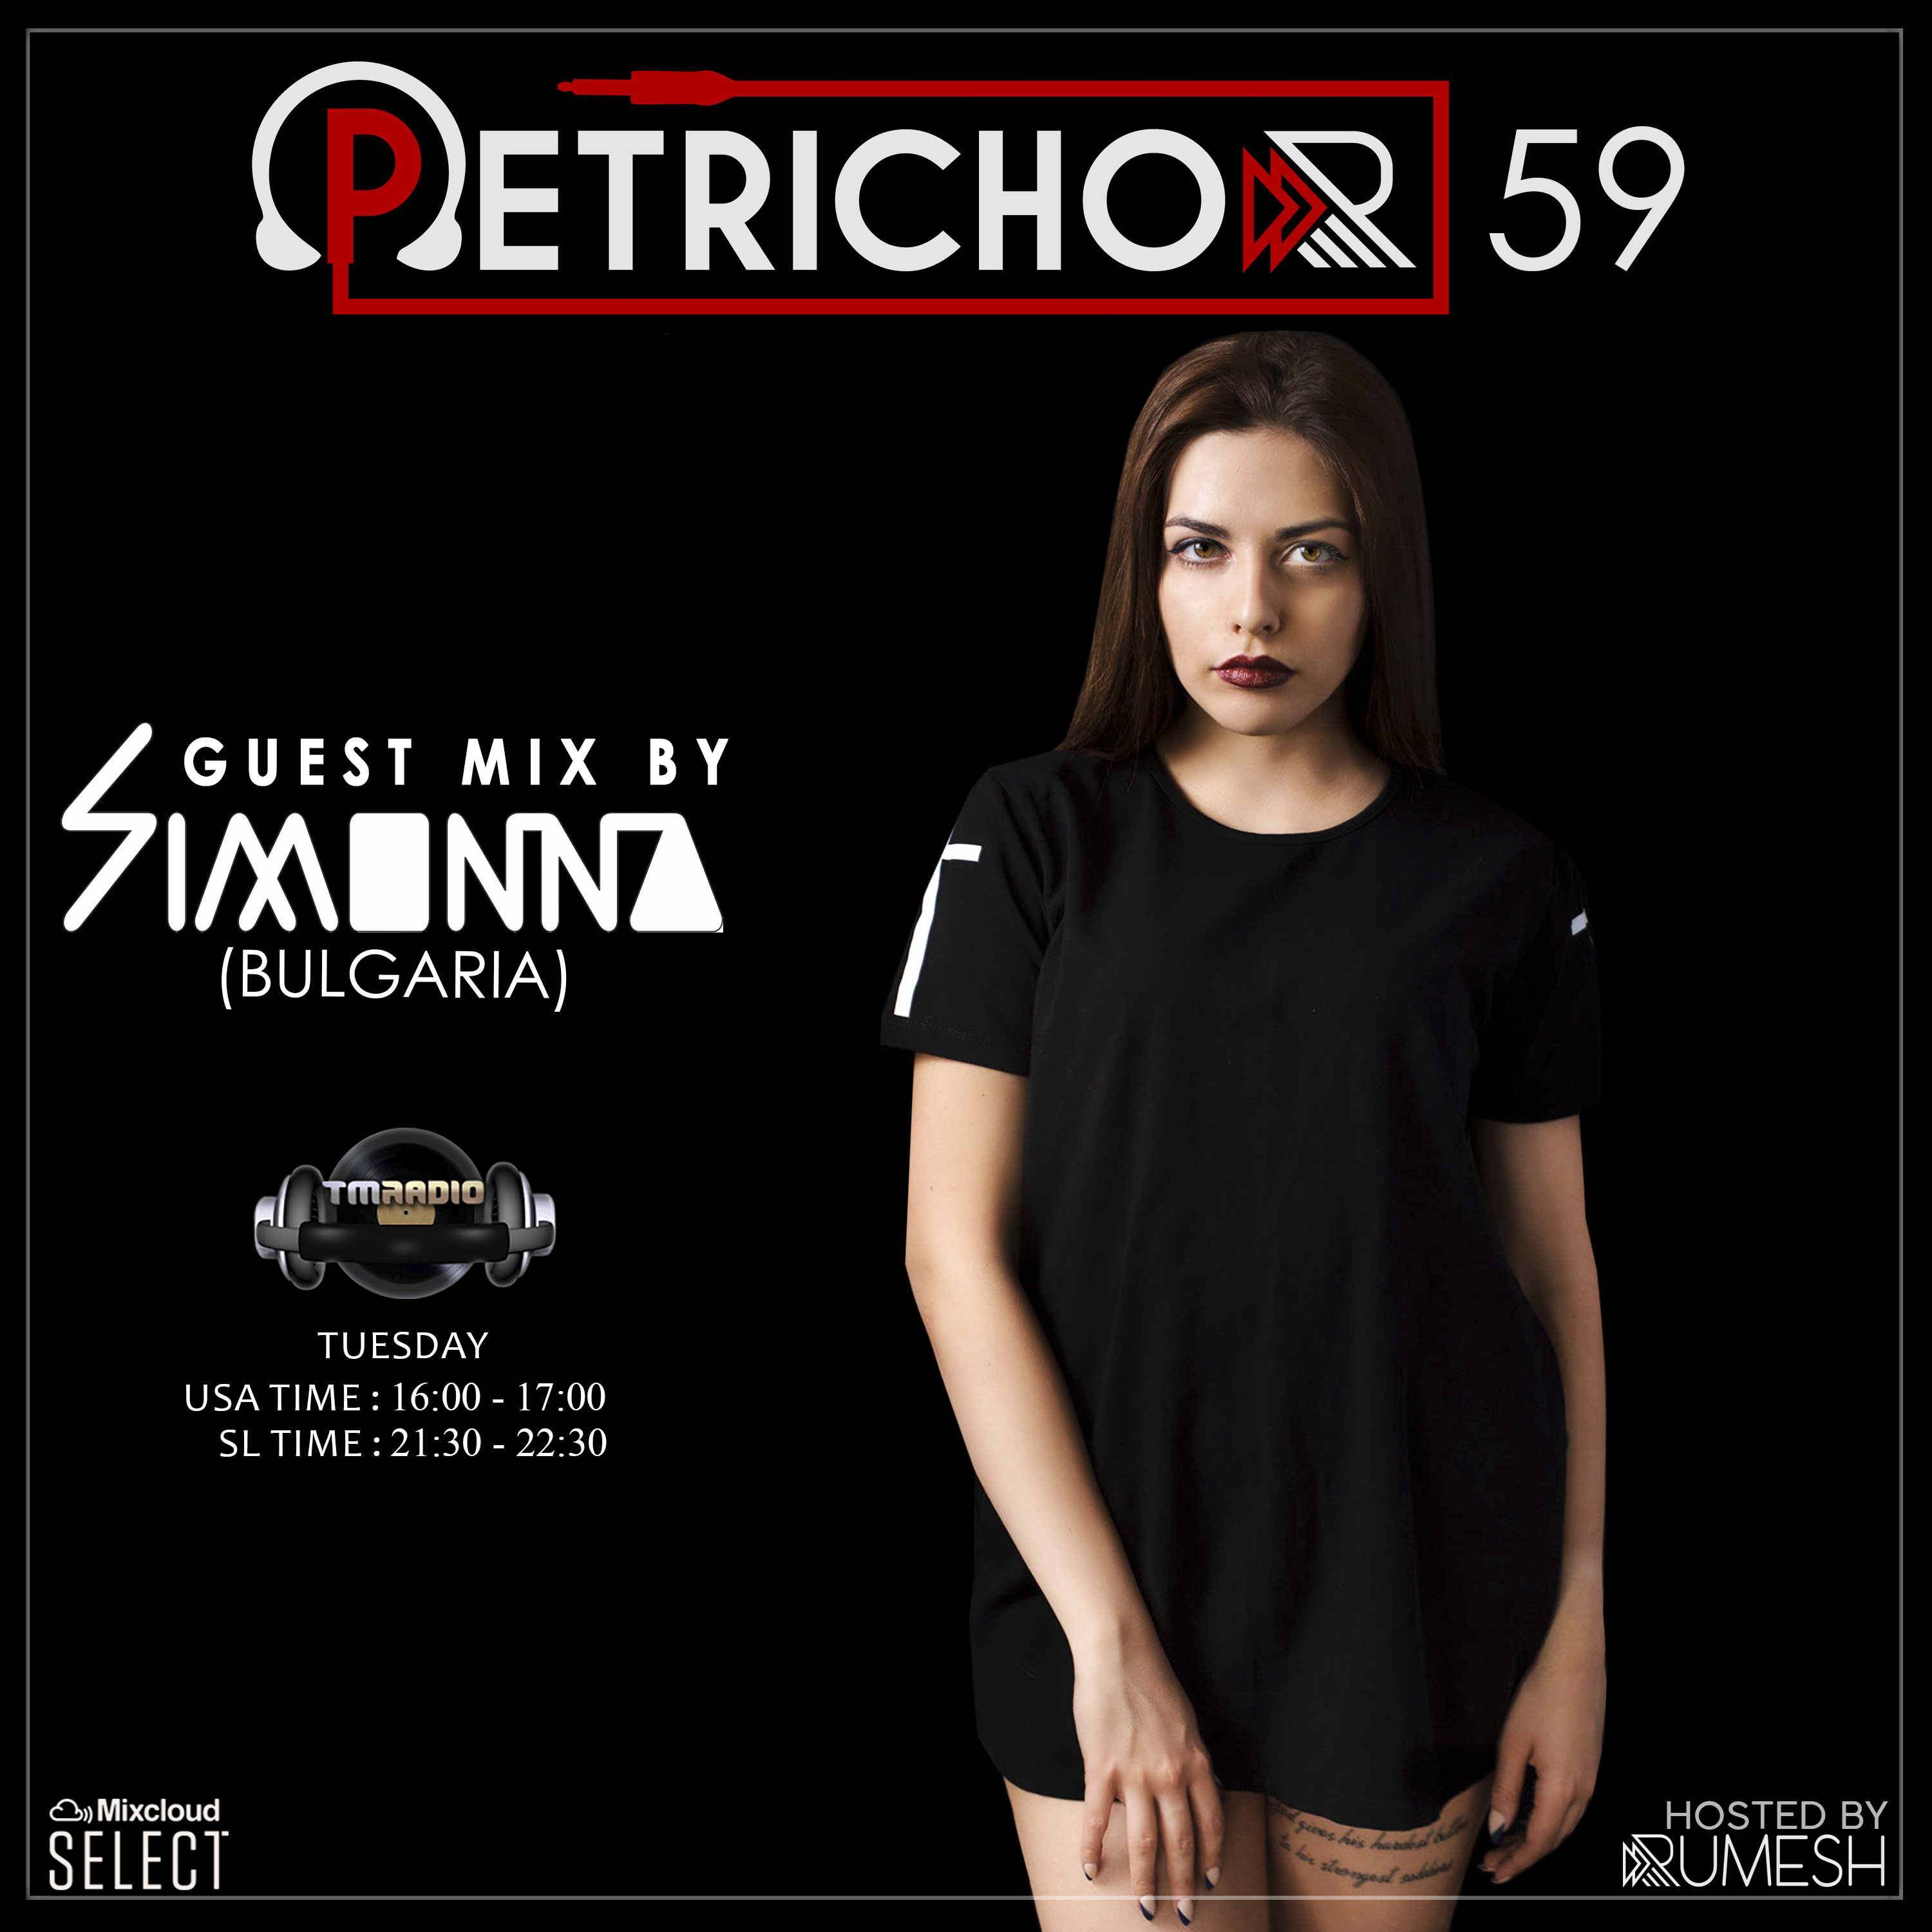 Petrichor :: Petrichor 59 guest mix by Simonna (Bulgaria) (aired on December 24th, 2019) banner logo